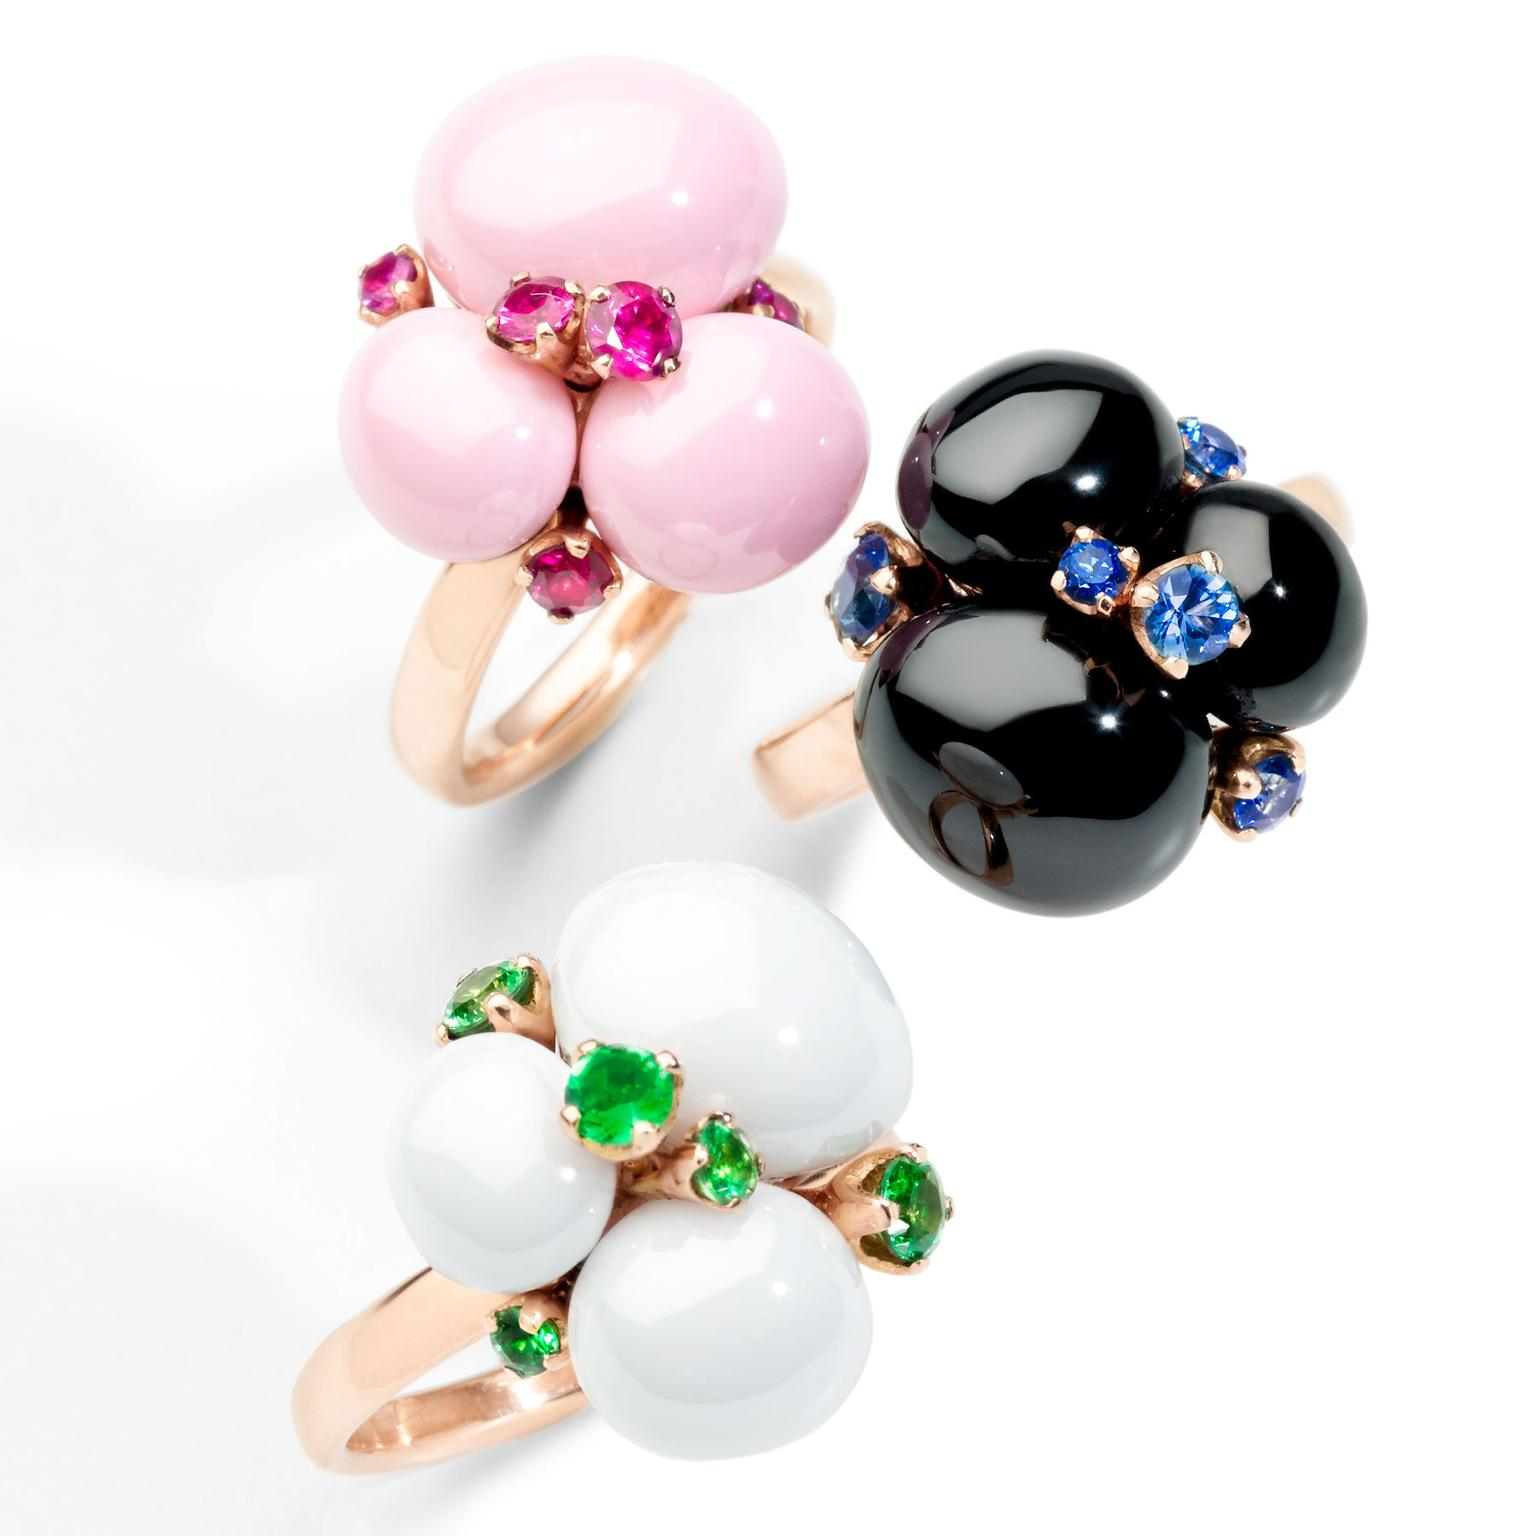 Pomellato Capri rings with cabochon rubies, sapphires and tsavorites